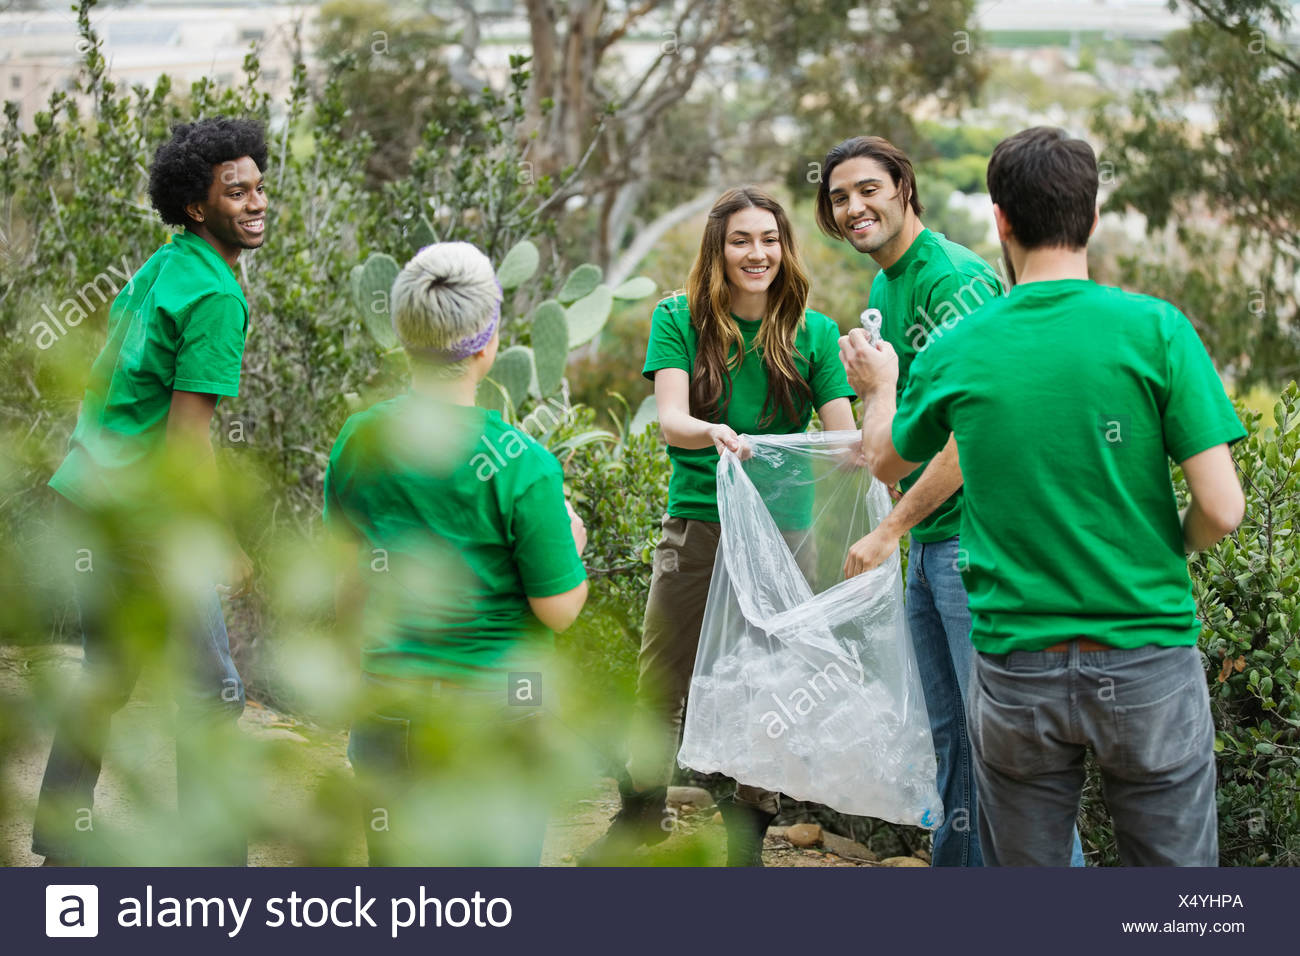 Group of environmentalists collecting empty bottles in plastic bag at park - Stock Image